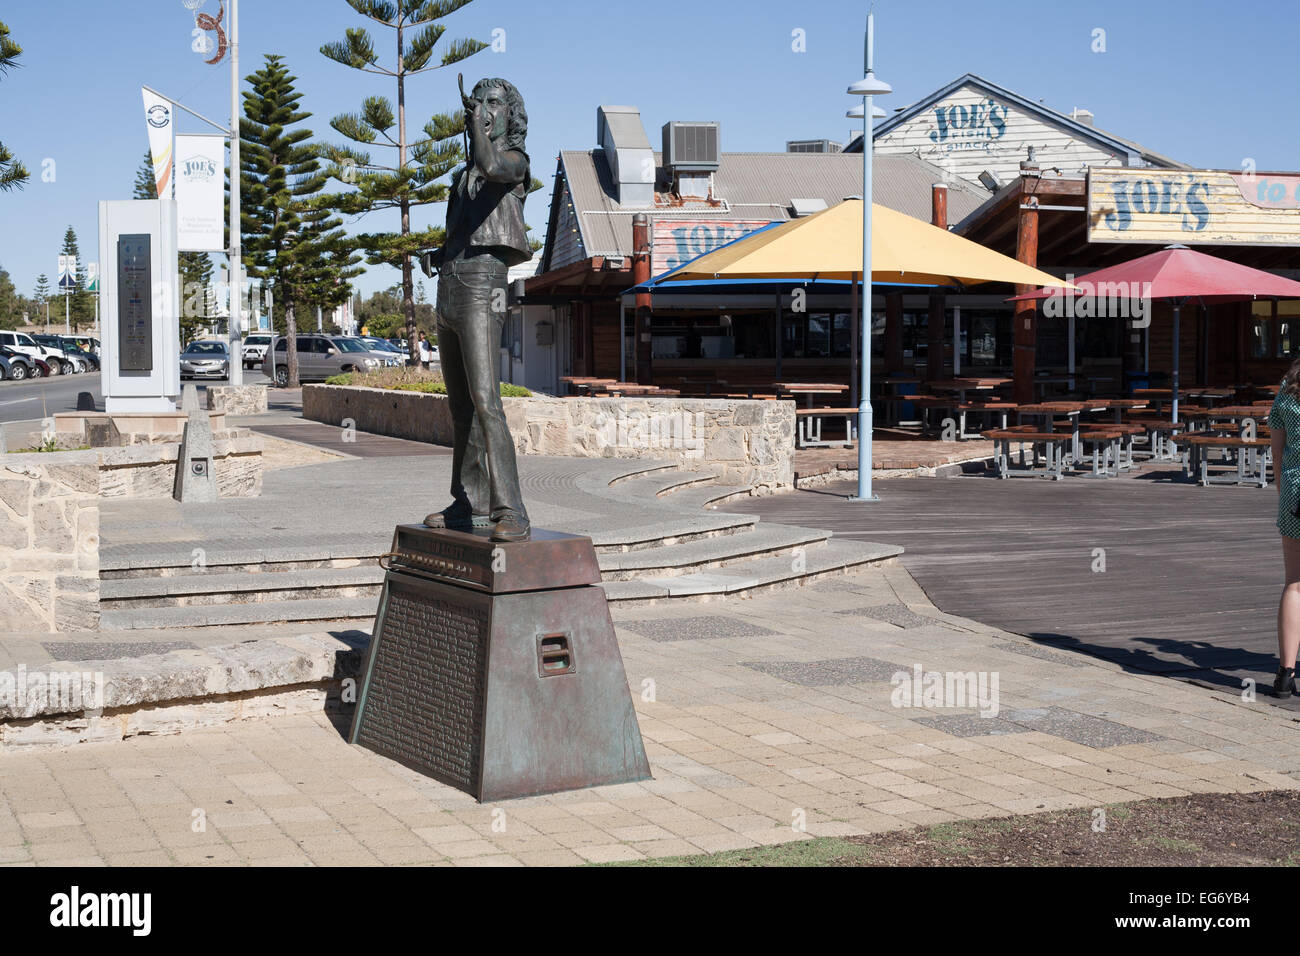 Statue of Bon Scott in Fremantle, Perth. Western Australia. Original lead singer for Australian rock n' roll - Stock Image